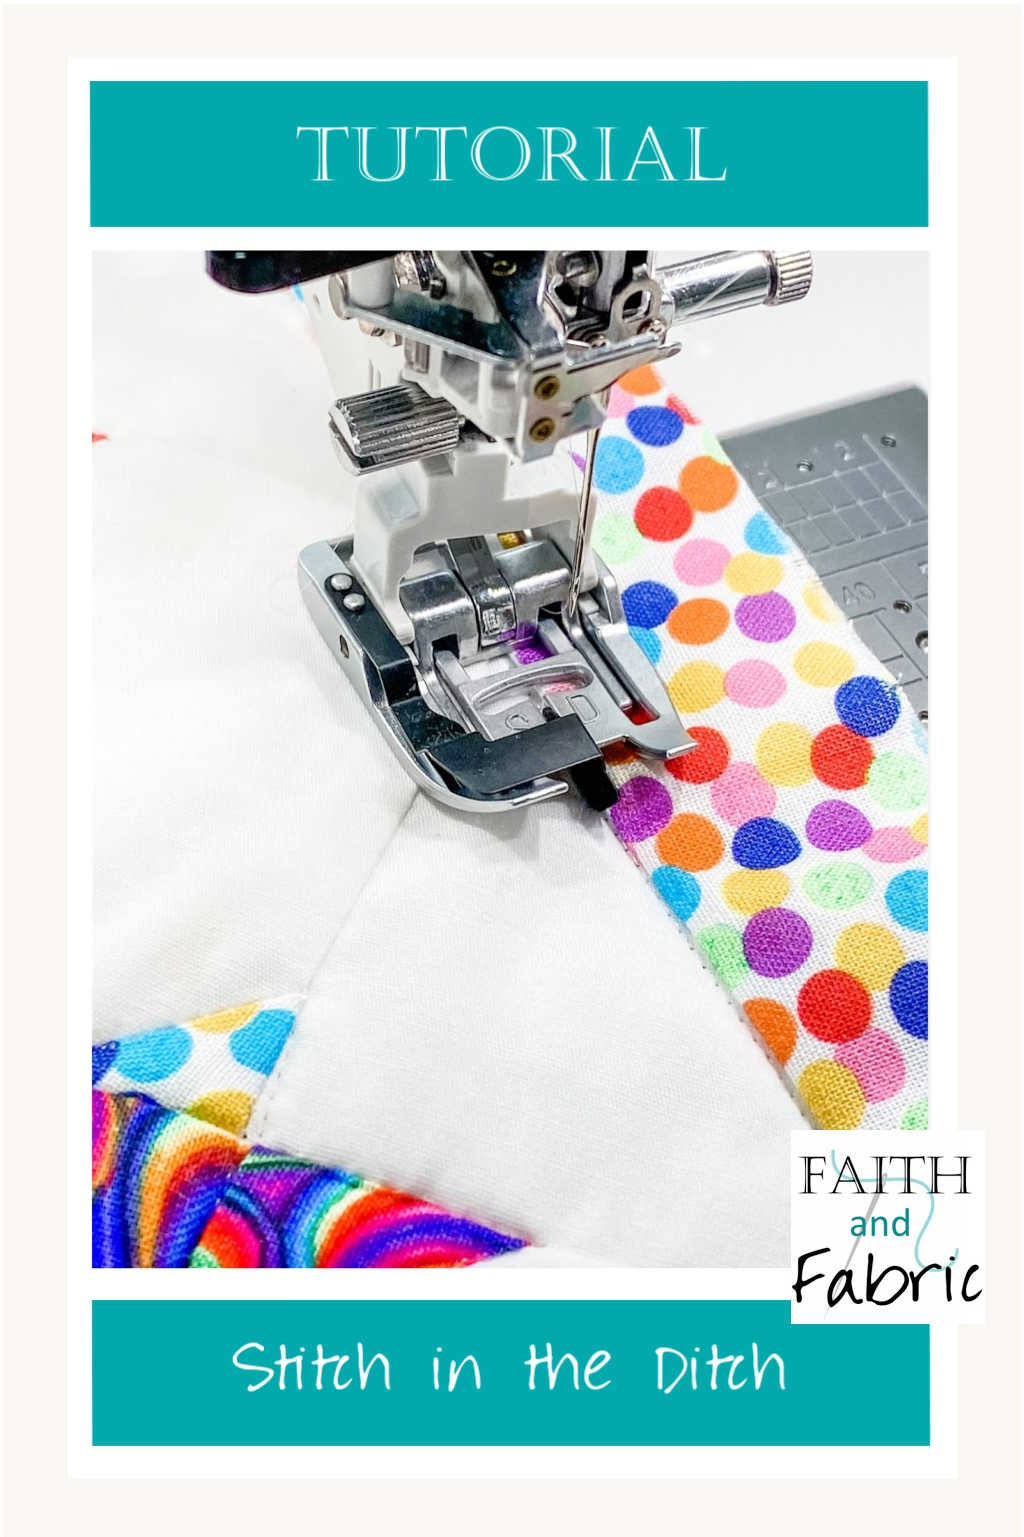 Have you ever wondered how to use your stitch in the ditch foot? Here are three tips for ensuring you get the smoothest result with hidden stitches each time you sew. Sewing with your stitch in the ditch has never been easier!